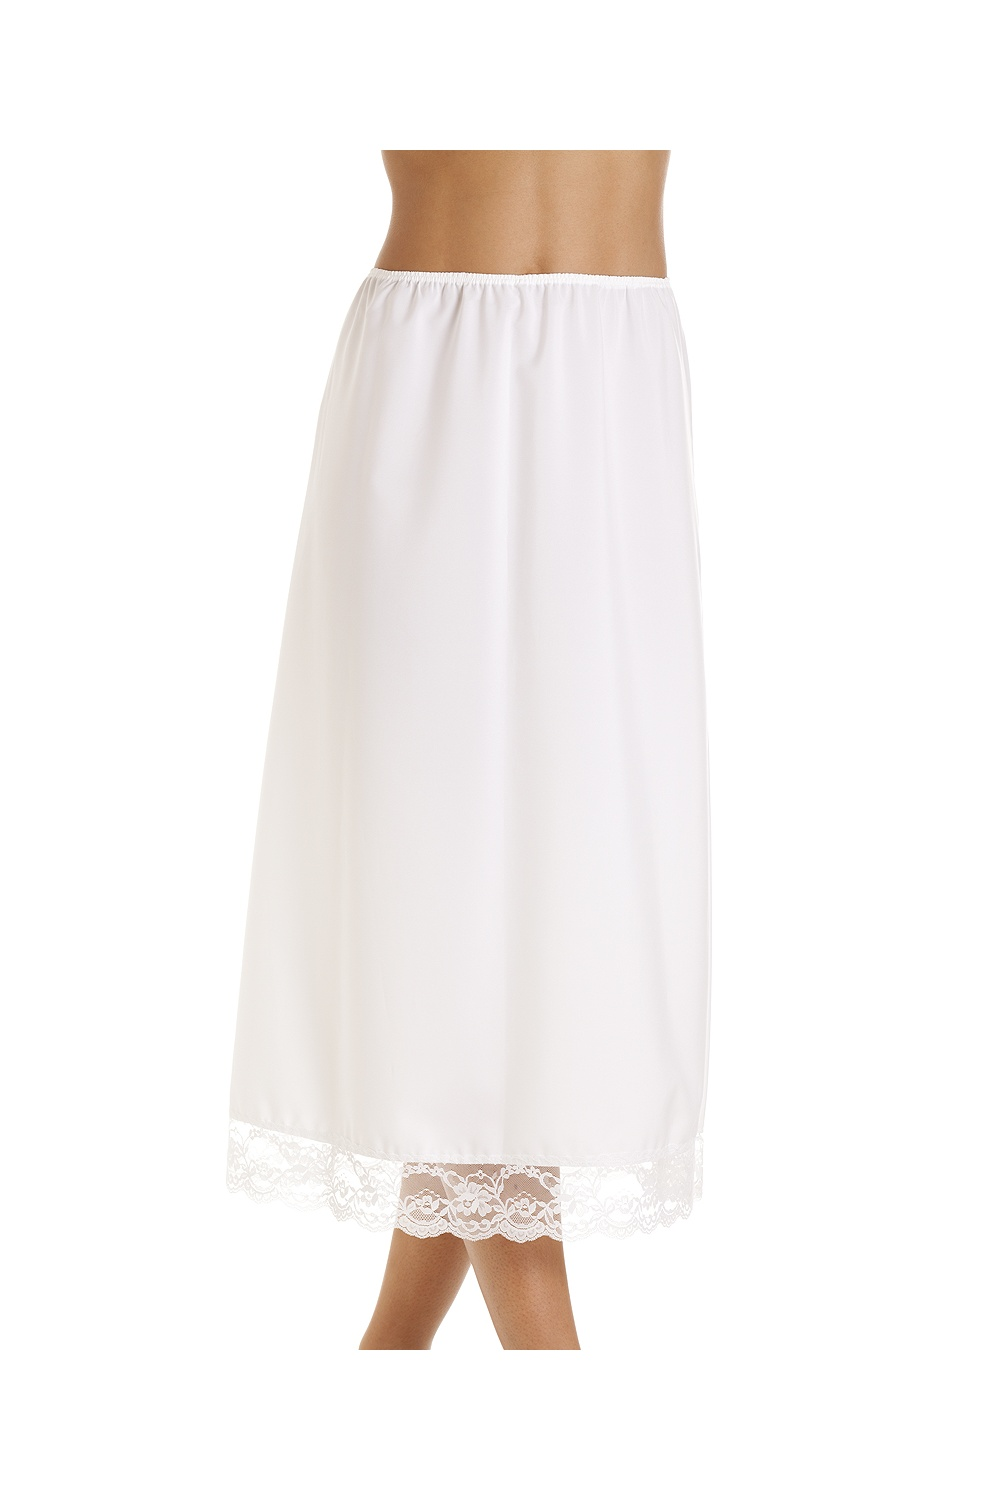 White 32 Half Length Lace Trim Under Skirt Slip